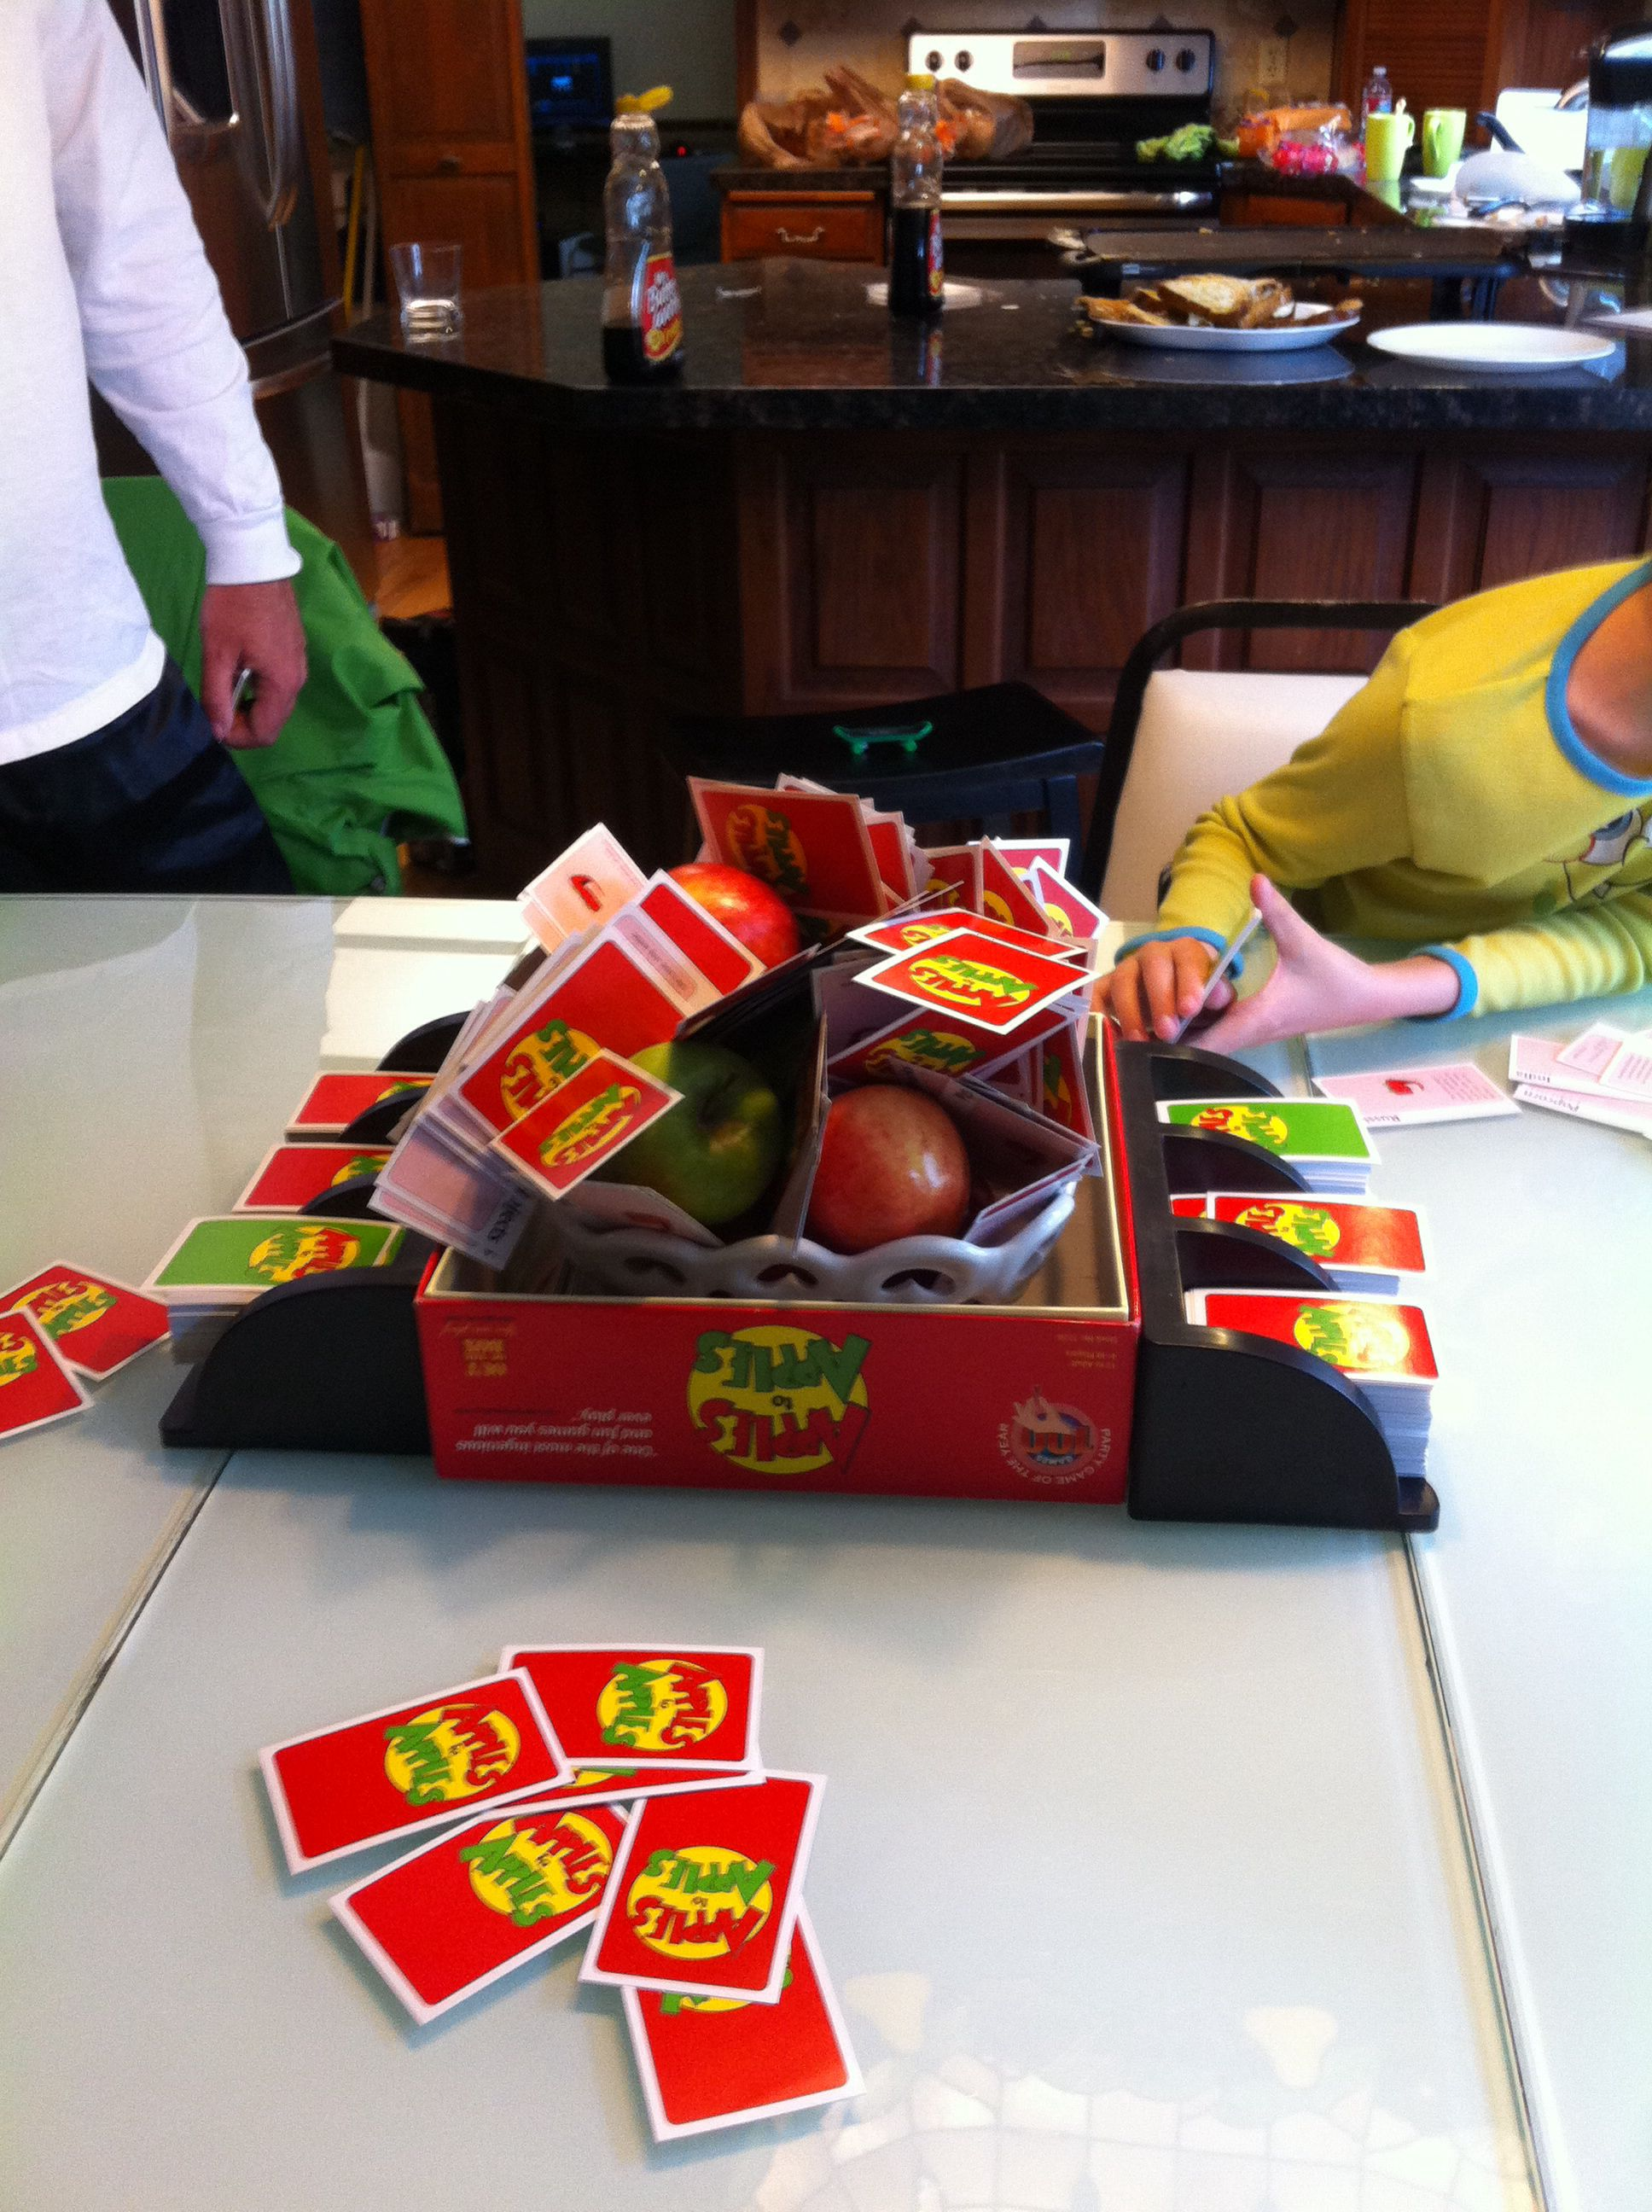 Apples to Apples card, Cards against humanity